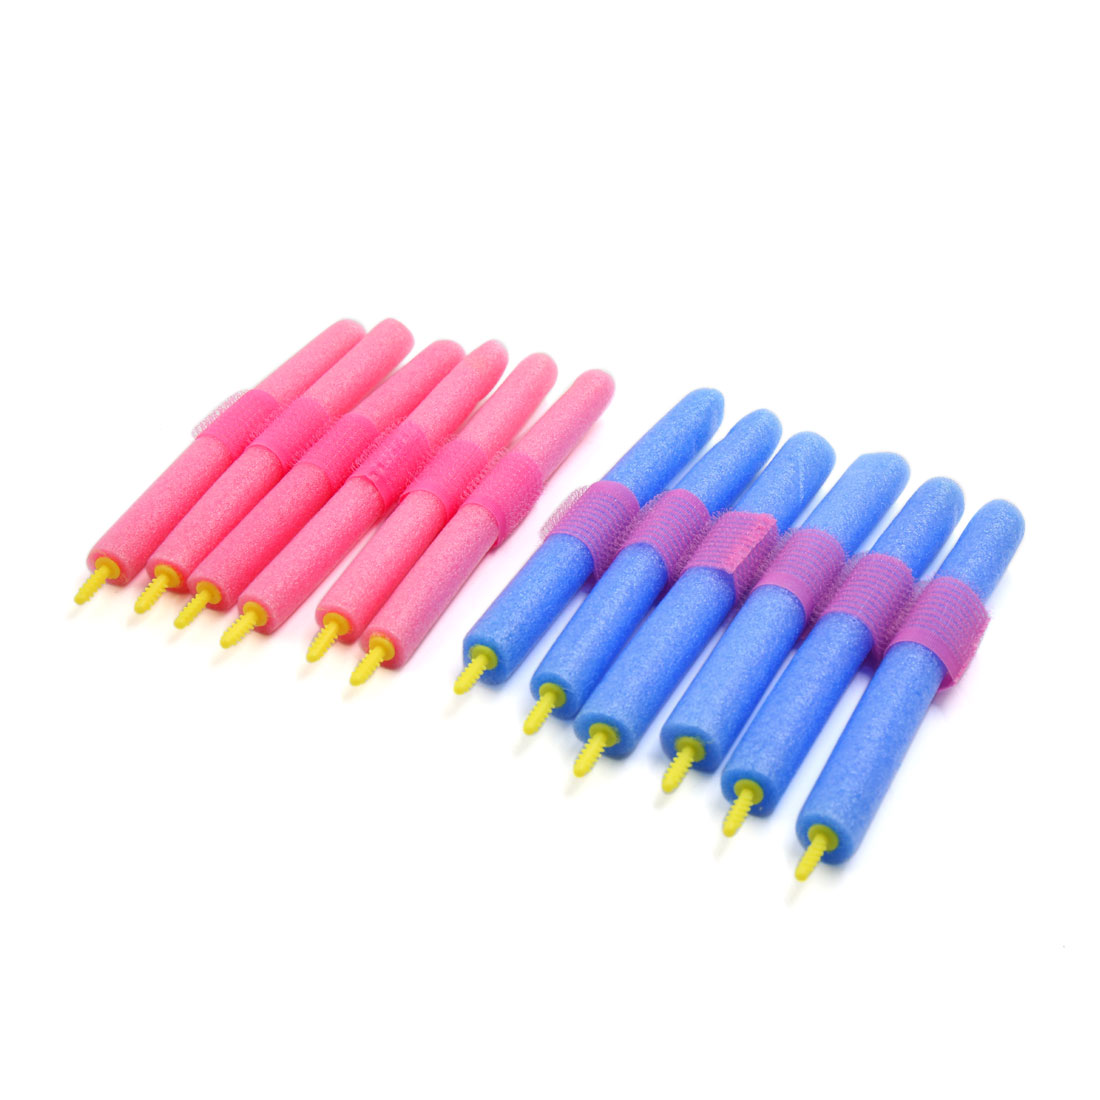 12 Pcs Beauty DIY Curler Makers Soft Foam Bendy Twist Curls Tool Hair Rollers